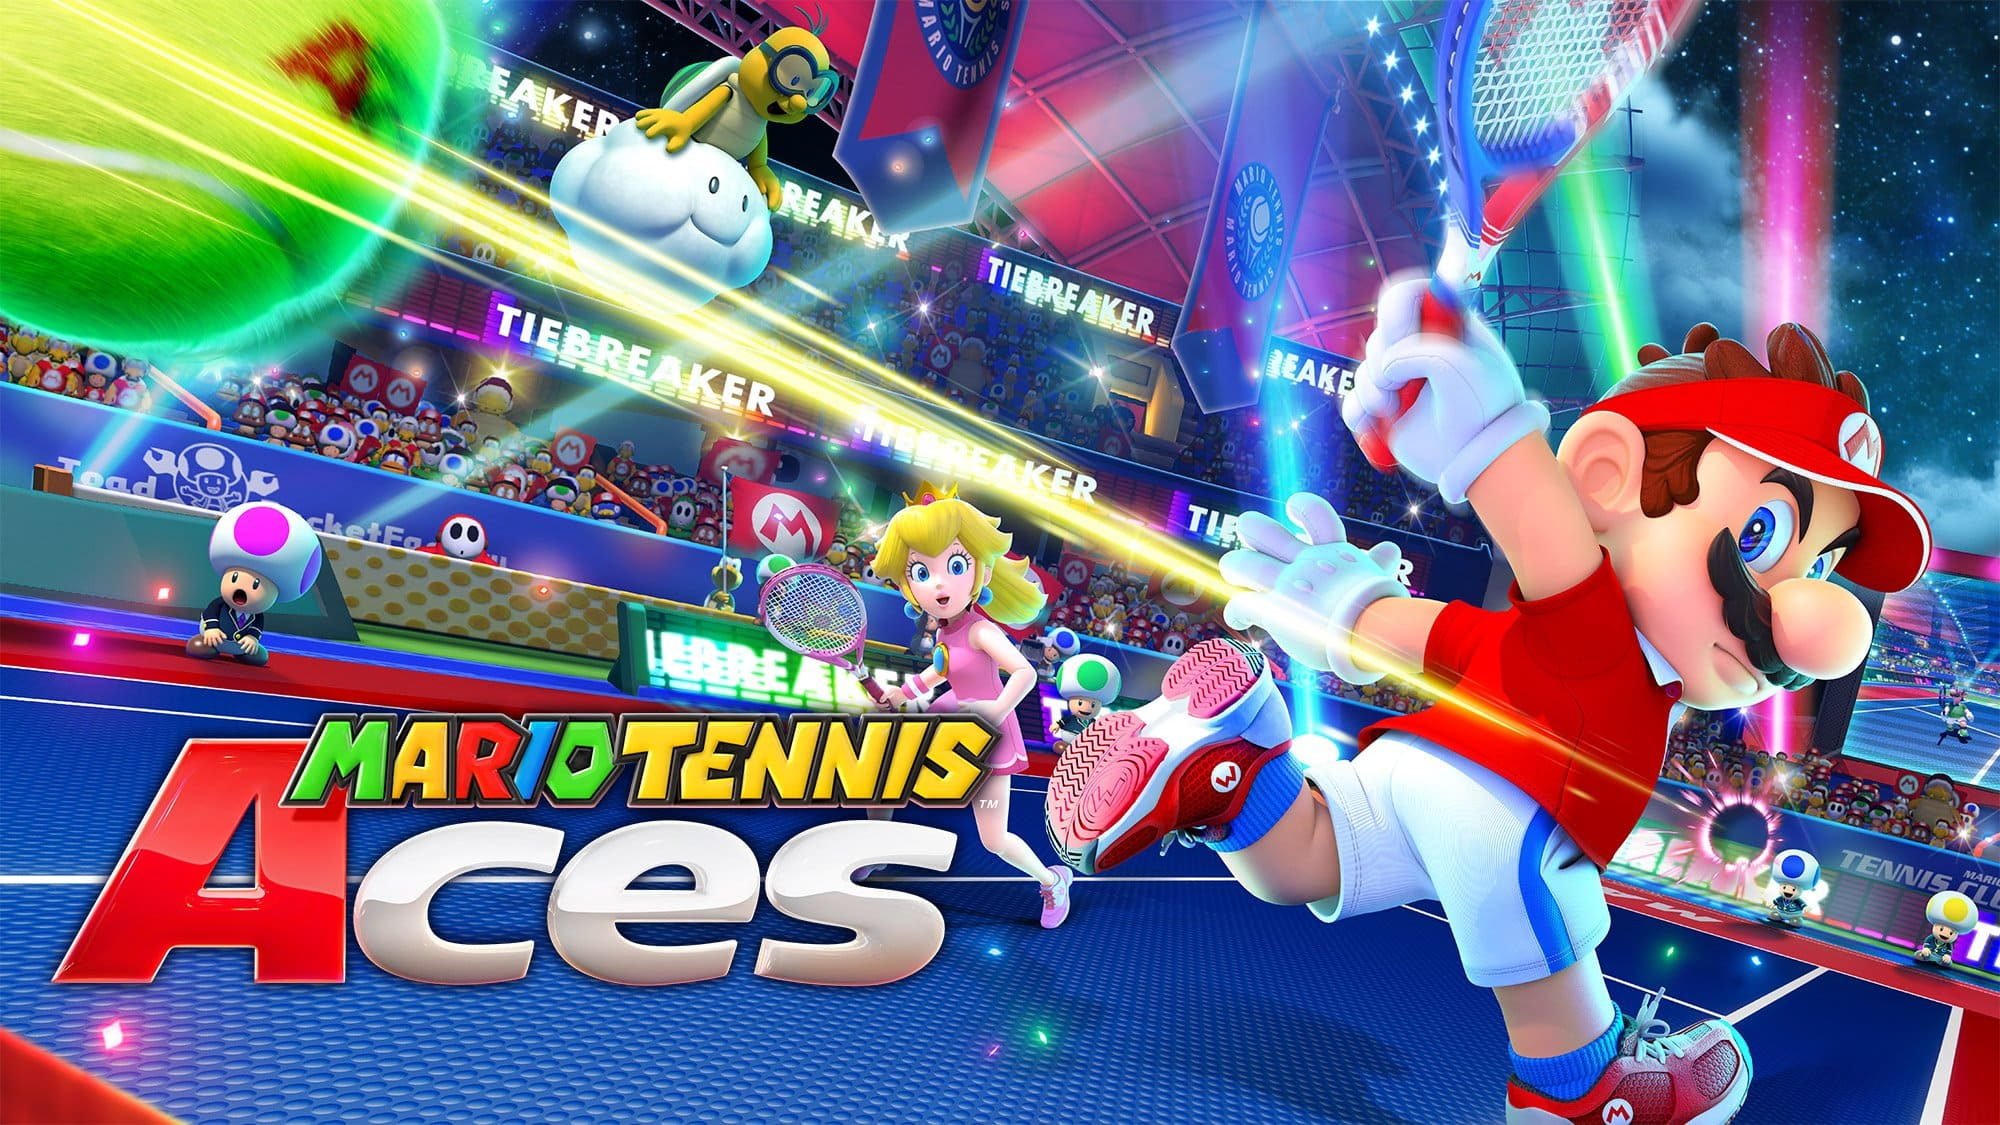 Pre-Purchase digital Mario Tennis Aces and get double gold coins $59.99